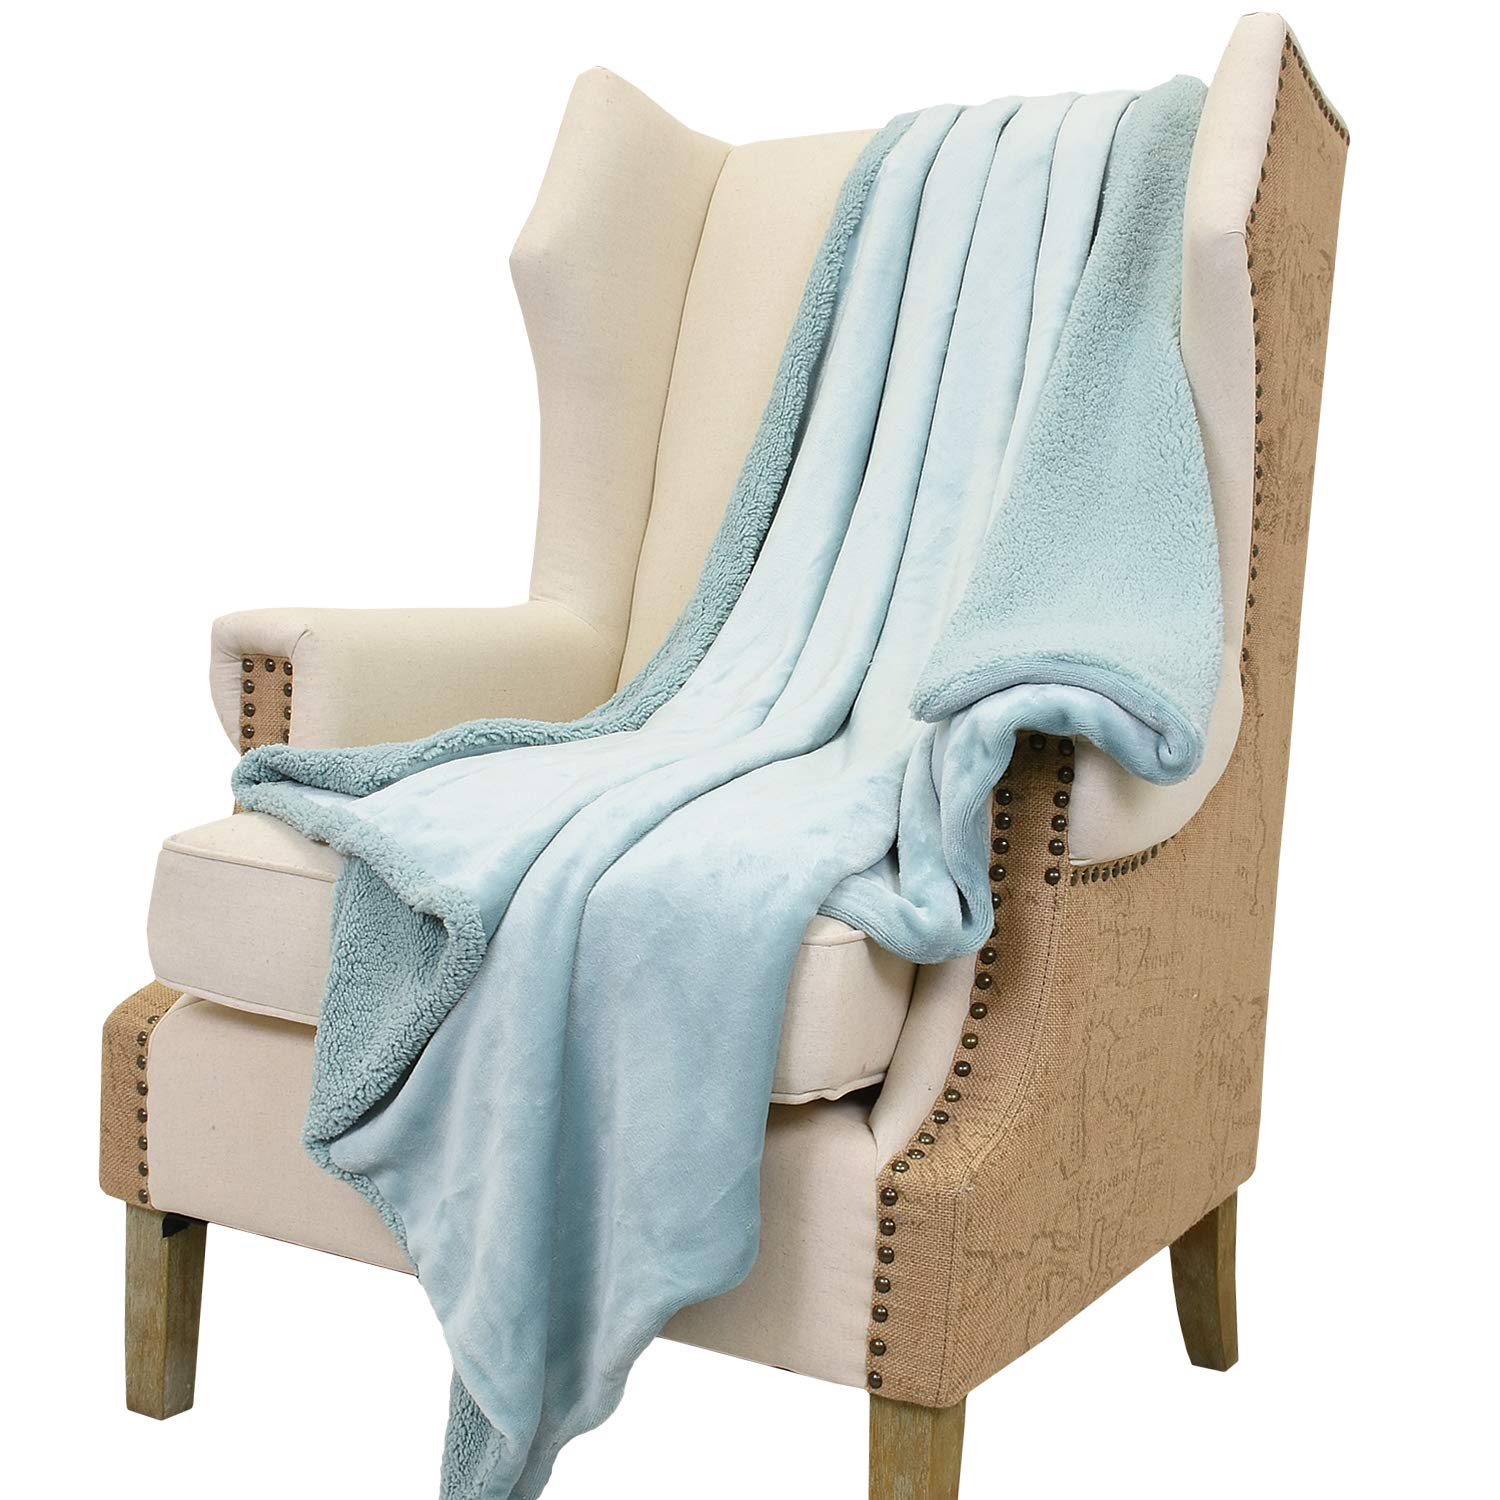 Sherpa Throws Blanket,Luxury Reversible Match Color Super Soft Fuzzy Micro Plush Fleece Snuggle Thick Gift Blanket All Season for TV Bed or Couch 50 x 60 Teal Mint Green By Catalonia